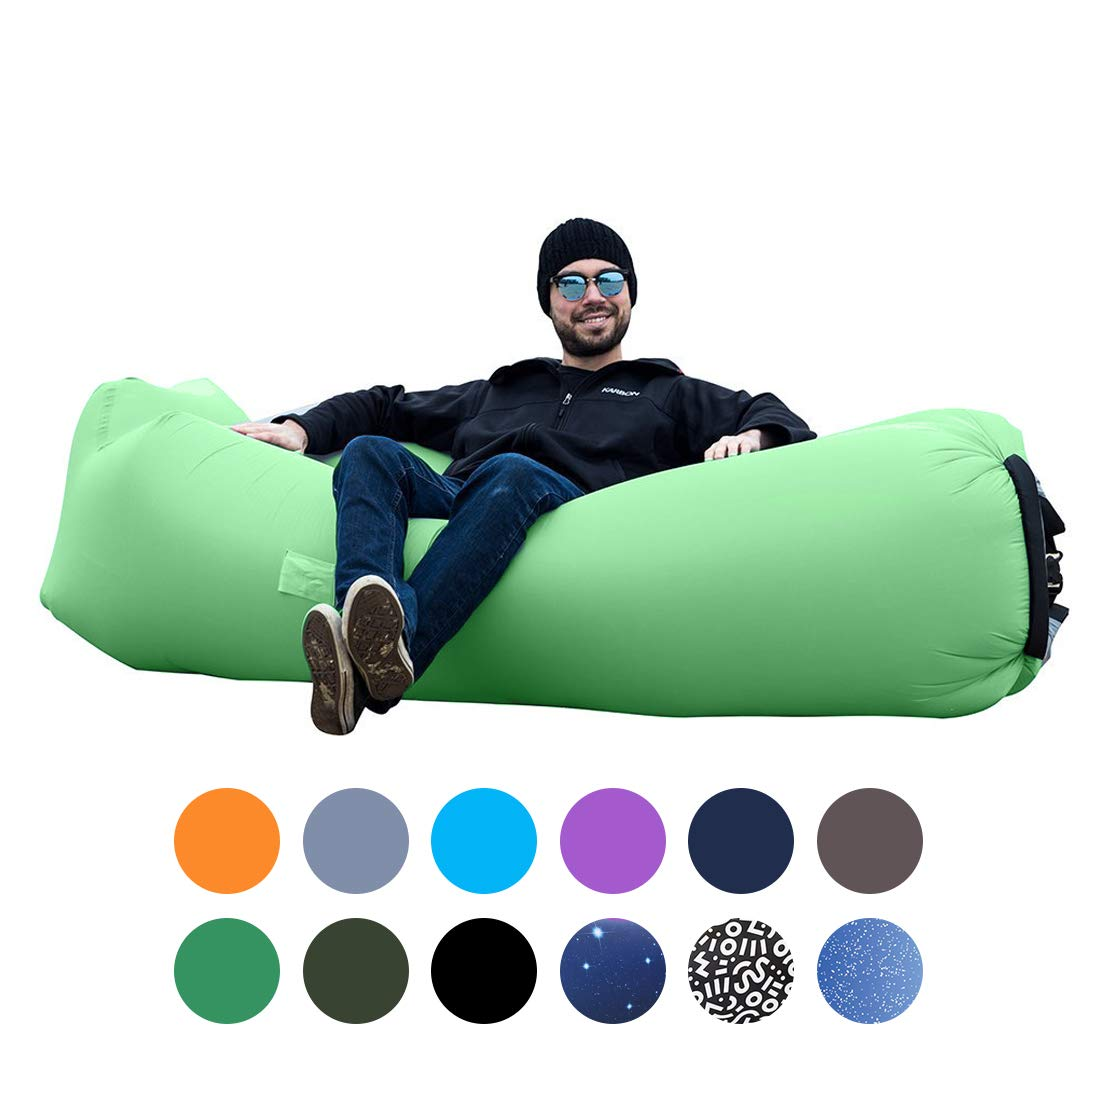 ORSEN Inflatable Lounger Portable Hammock Air Sofa with Water Proof,Anti-Air Leaking Design,Ideal Inflatable Couch and Beach Chair Camping Accessories for Parties Picnic&Festival by ORSEN